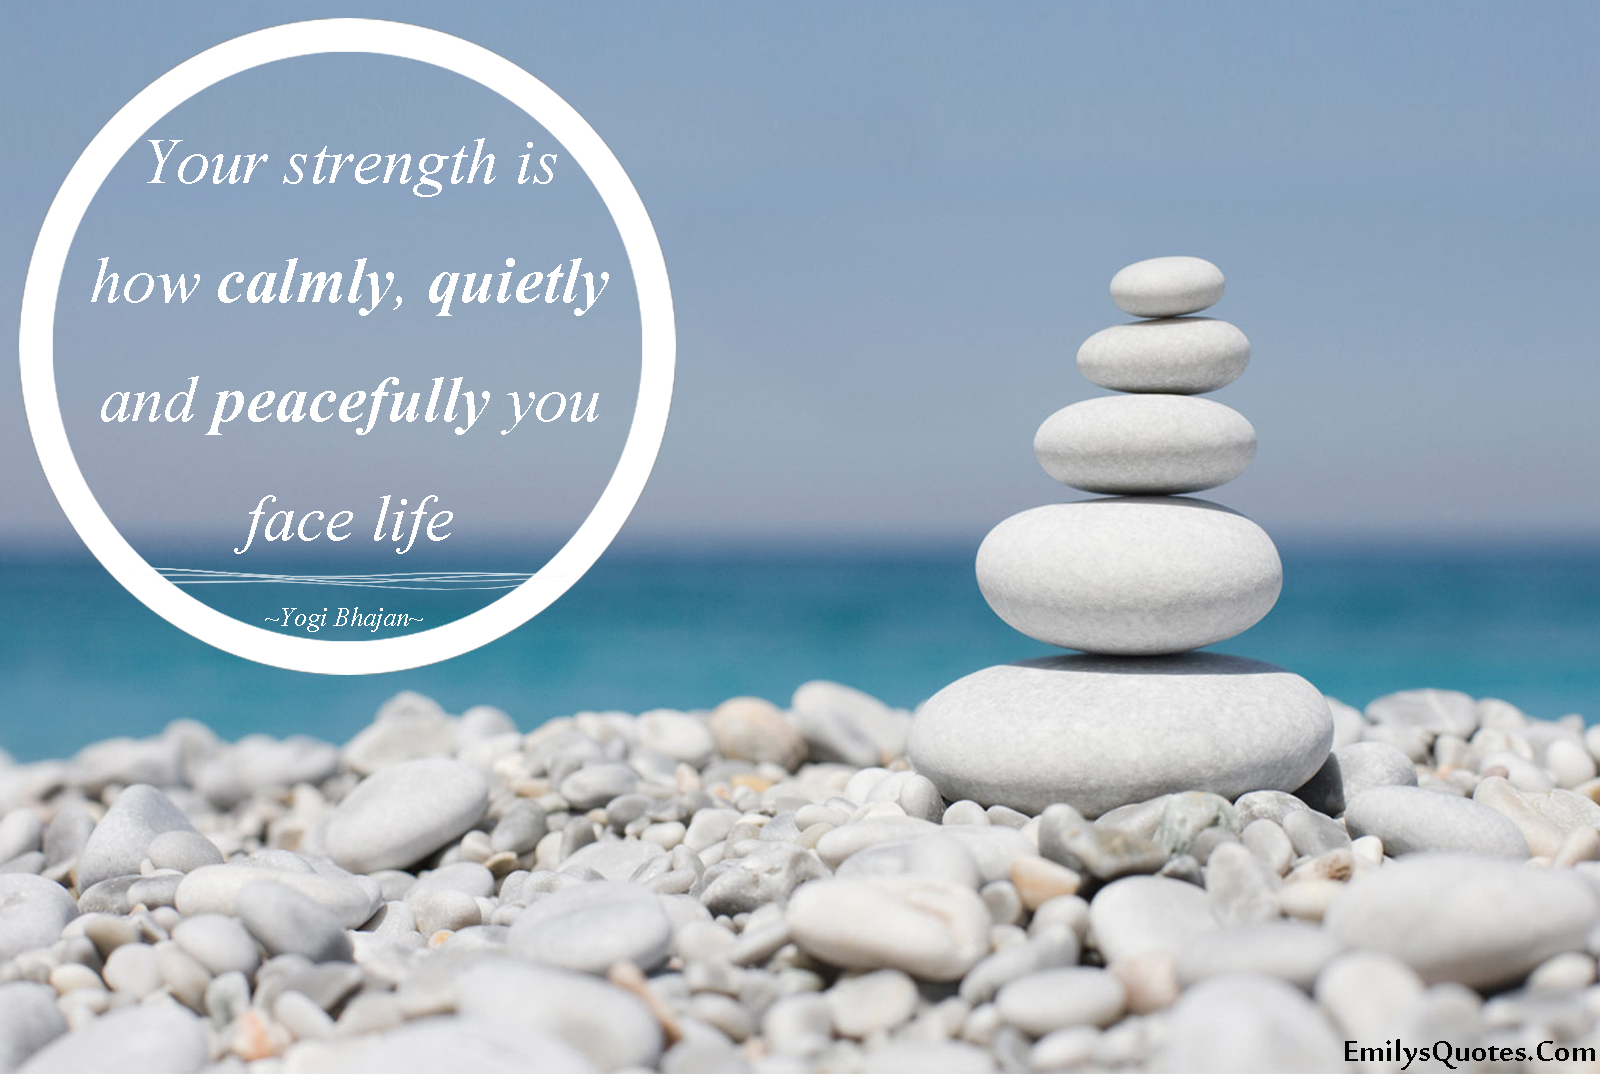 Peaceful Life Quotes Your Strength Is How Calmly Quietly And Peacefully You Face Life